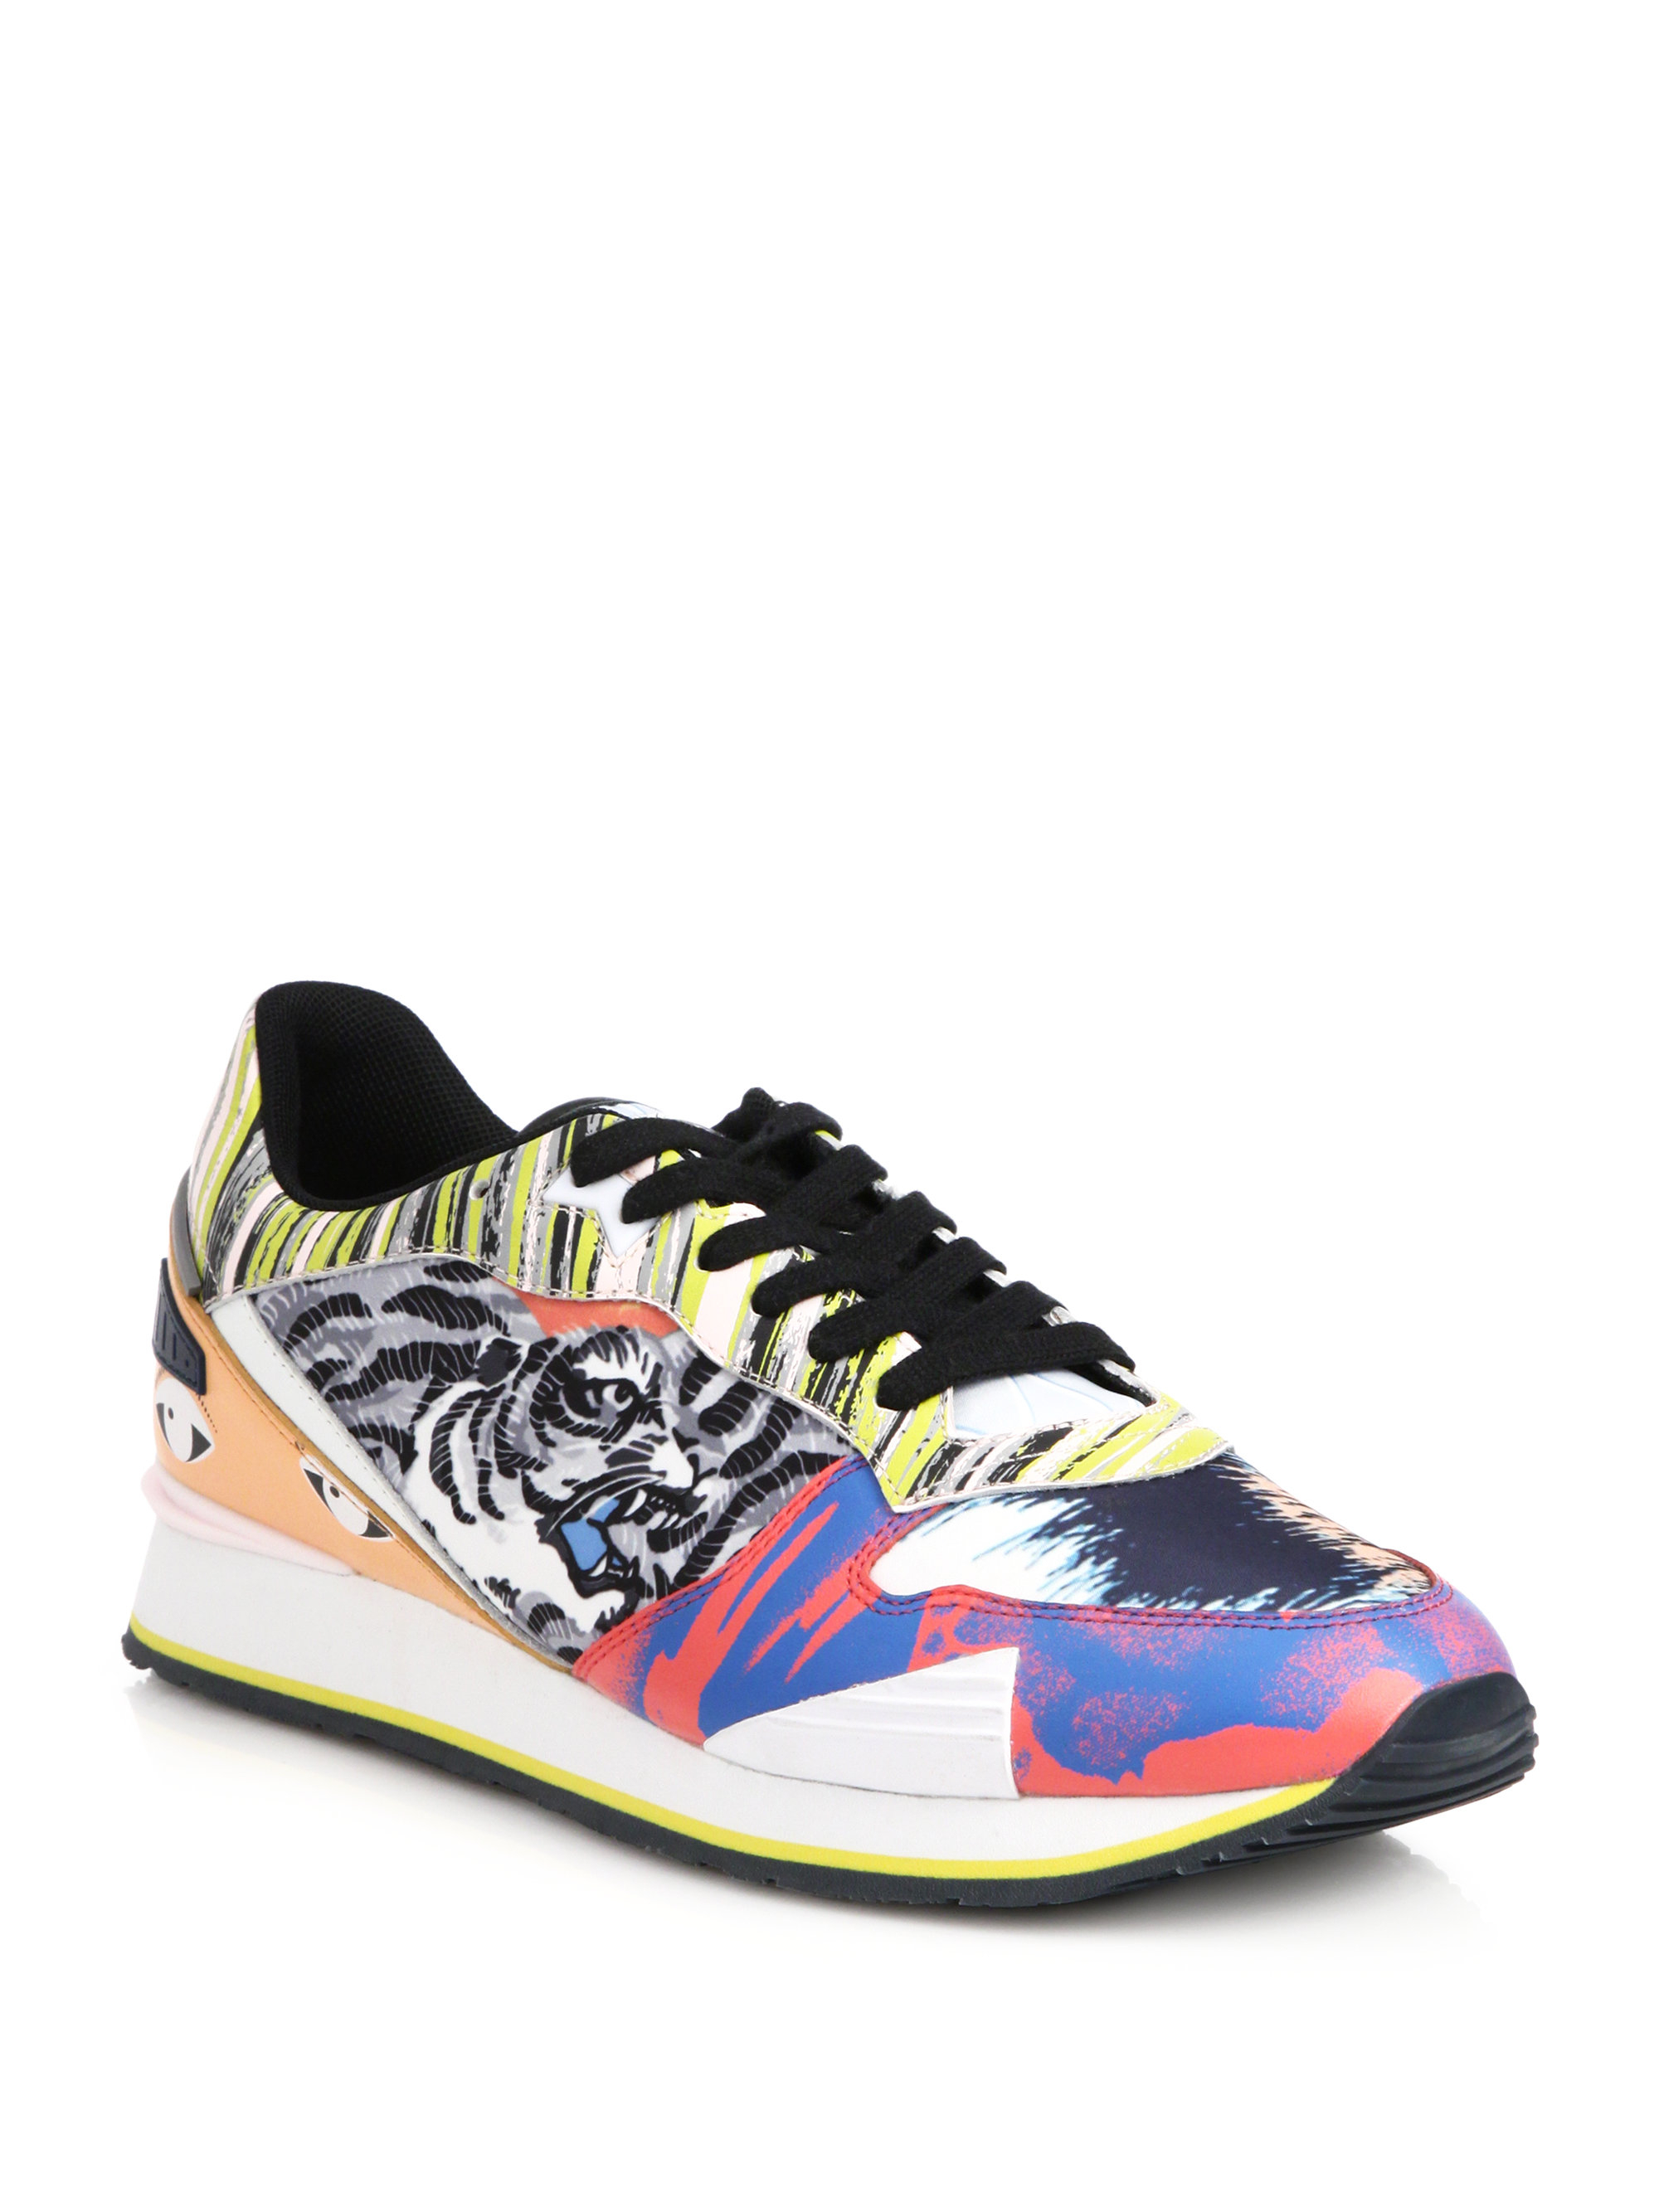 Lastest 110 Cheap KENZO Shoes For Women 170662  GT170662 Free Shipping